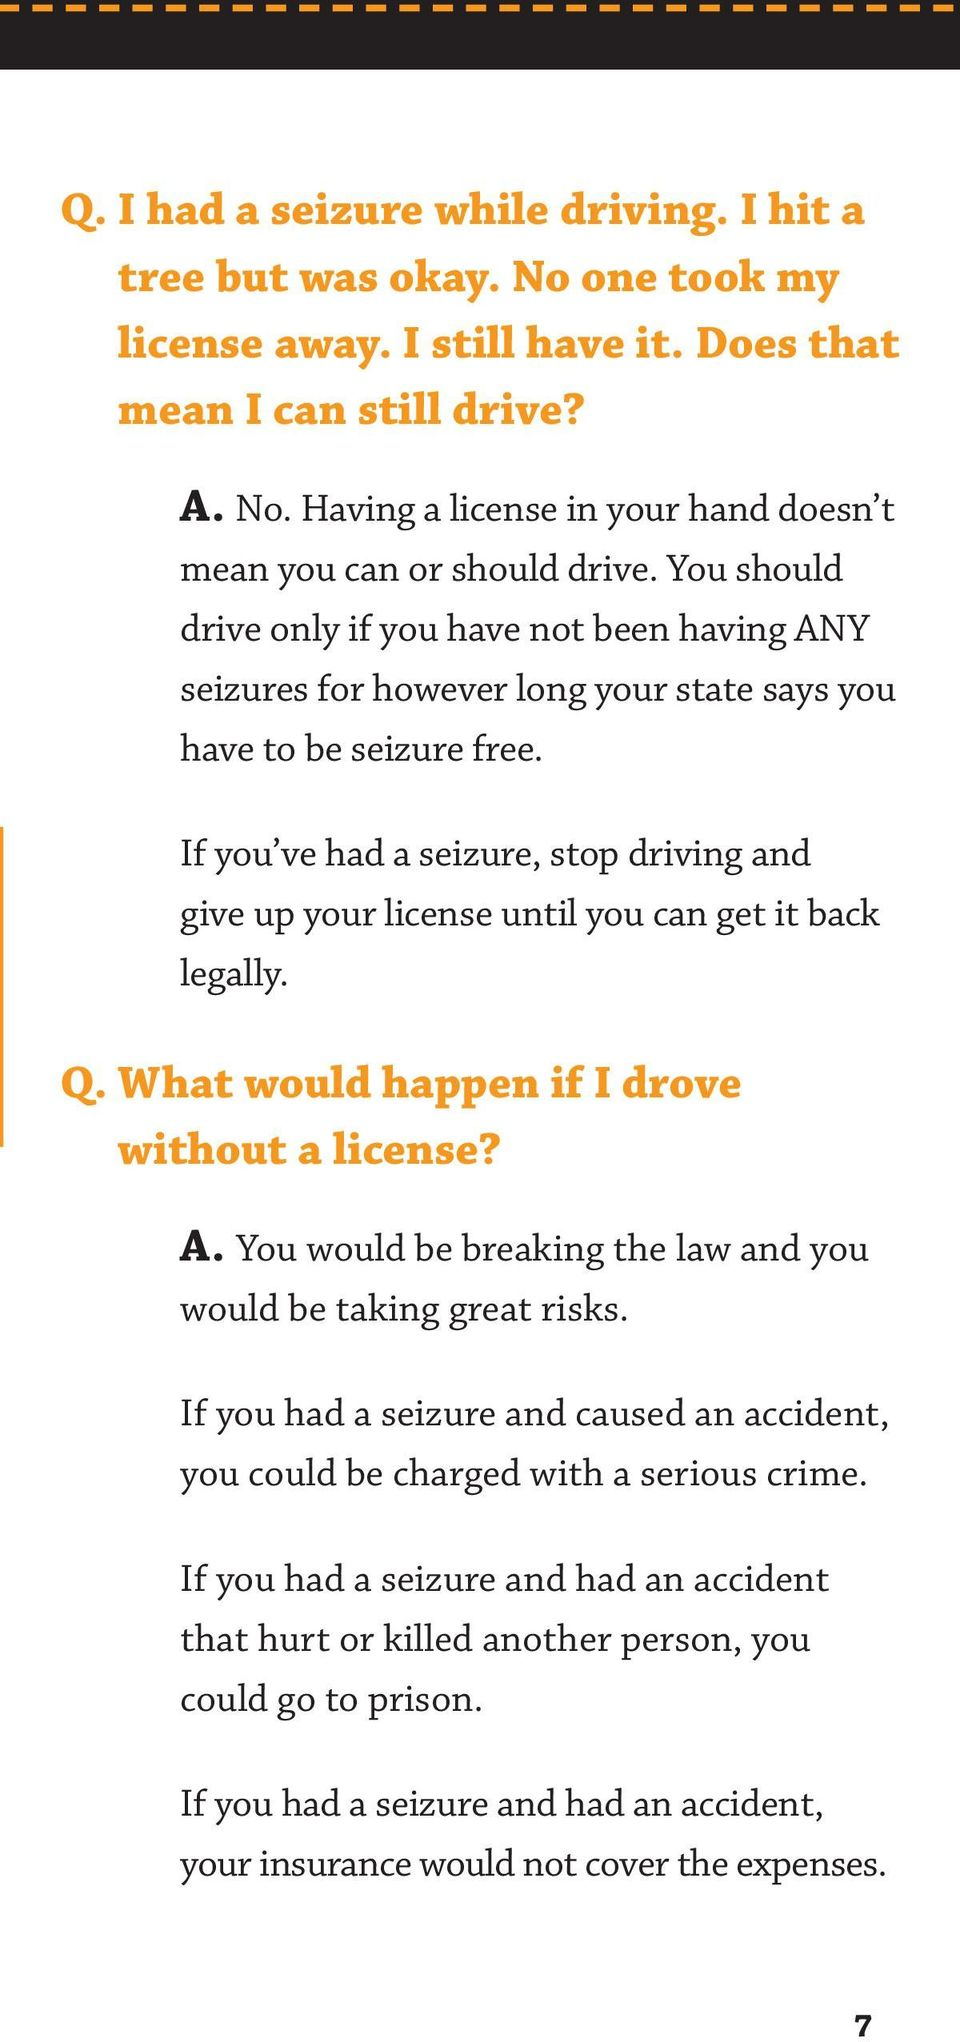 If you ve had a seizure, stop driving and give up your license until you can get it back legally. Q. What would happen if I drove without a license? A.